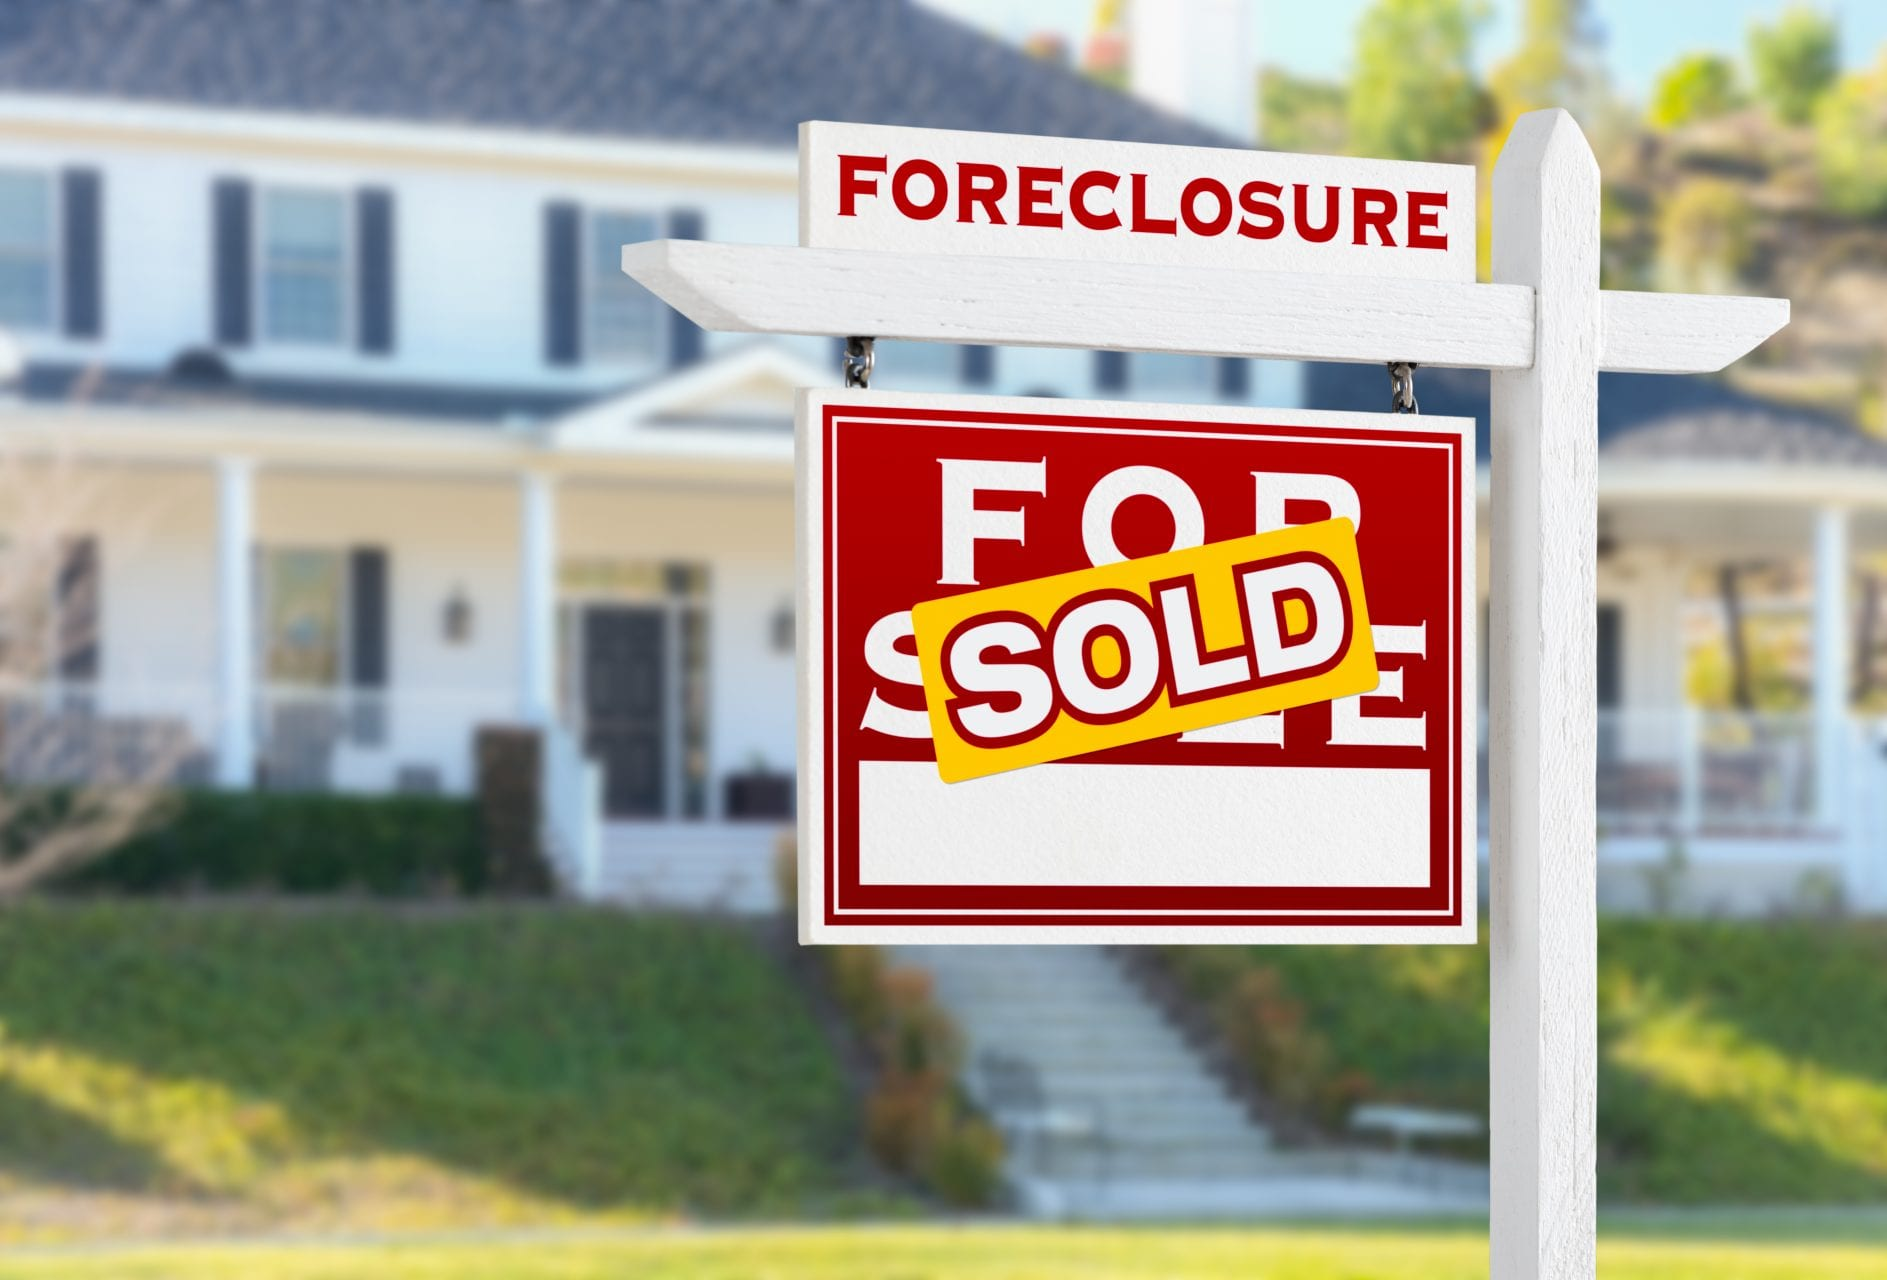 Left Facing Foreclosure Sold For Sale Real Estate Sign in Front